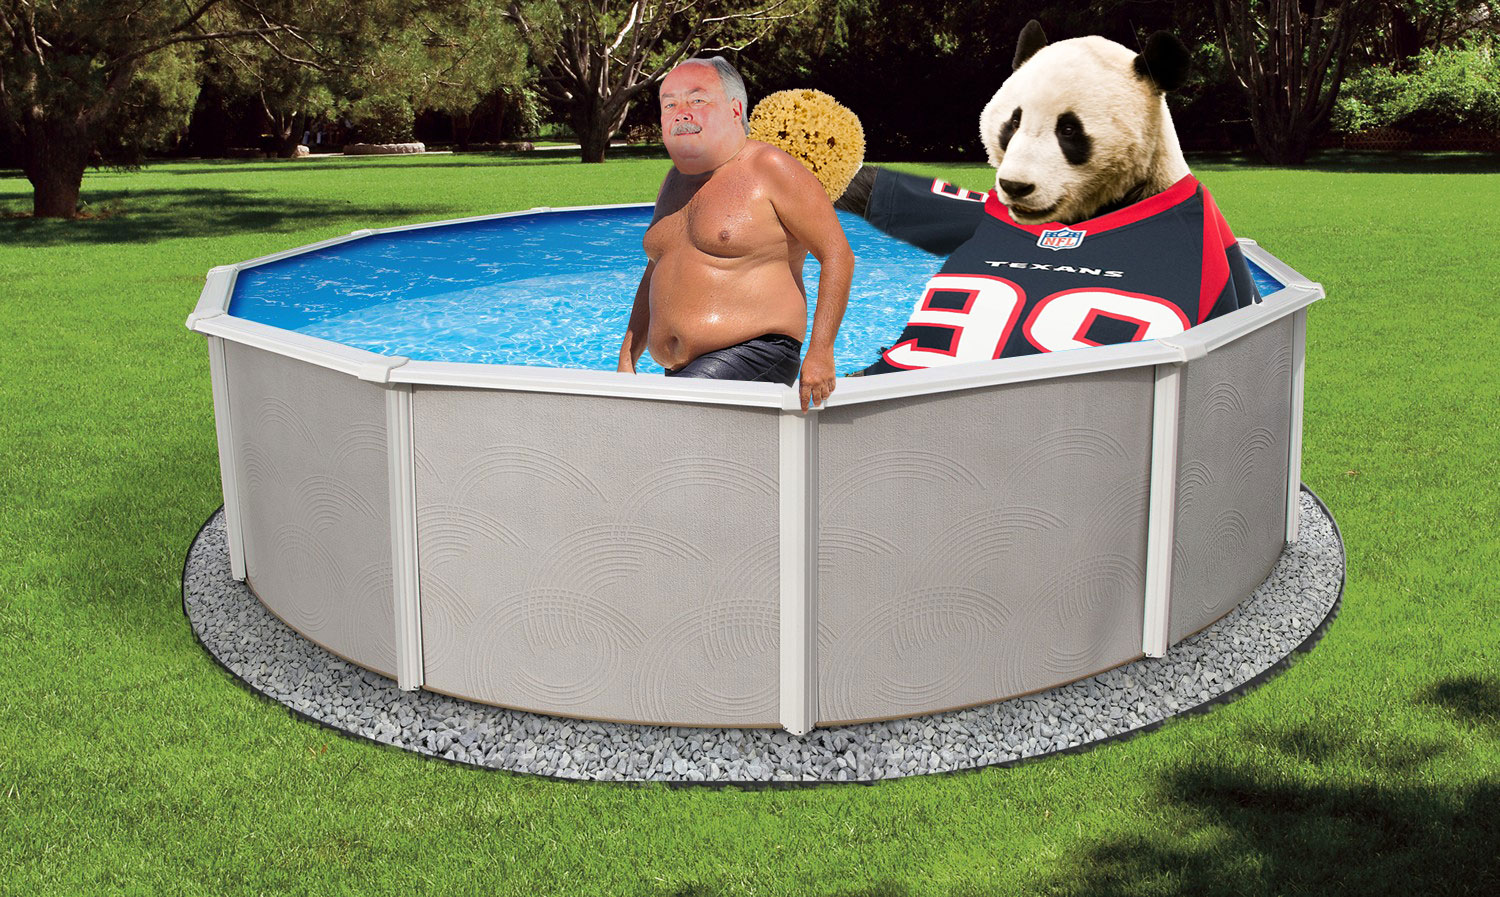 Going with Hoyer God Help us is currently enjoying his sponge bath from BFD!